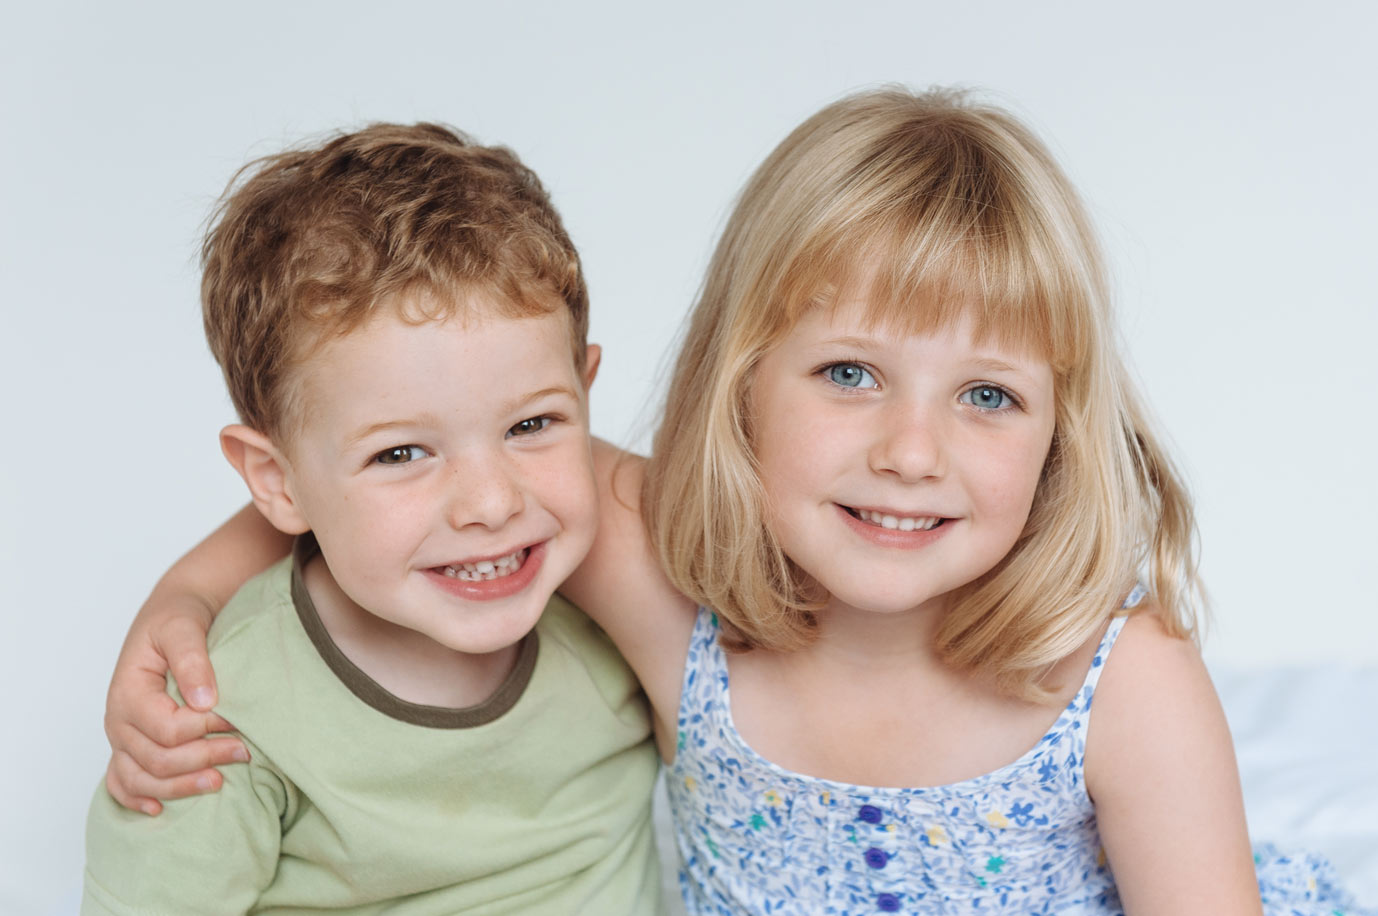 Young siblings pose for portrait